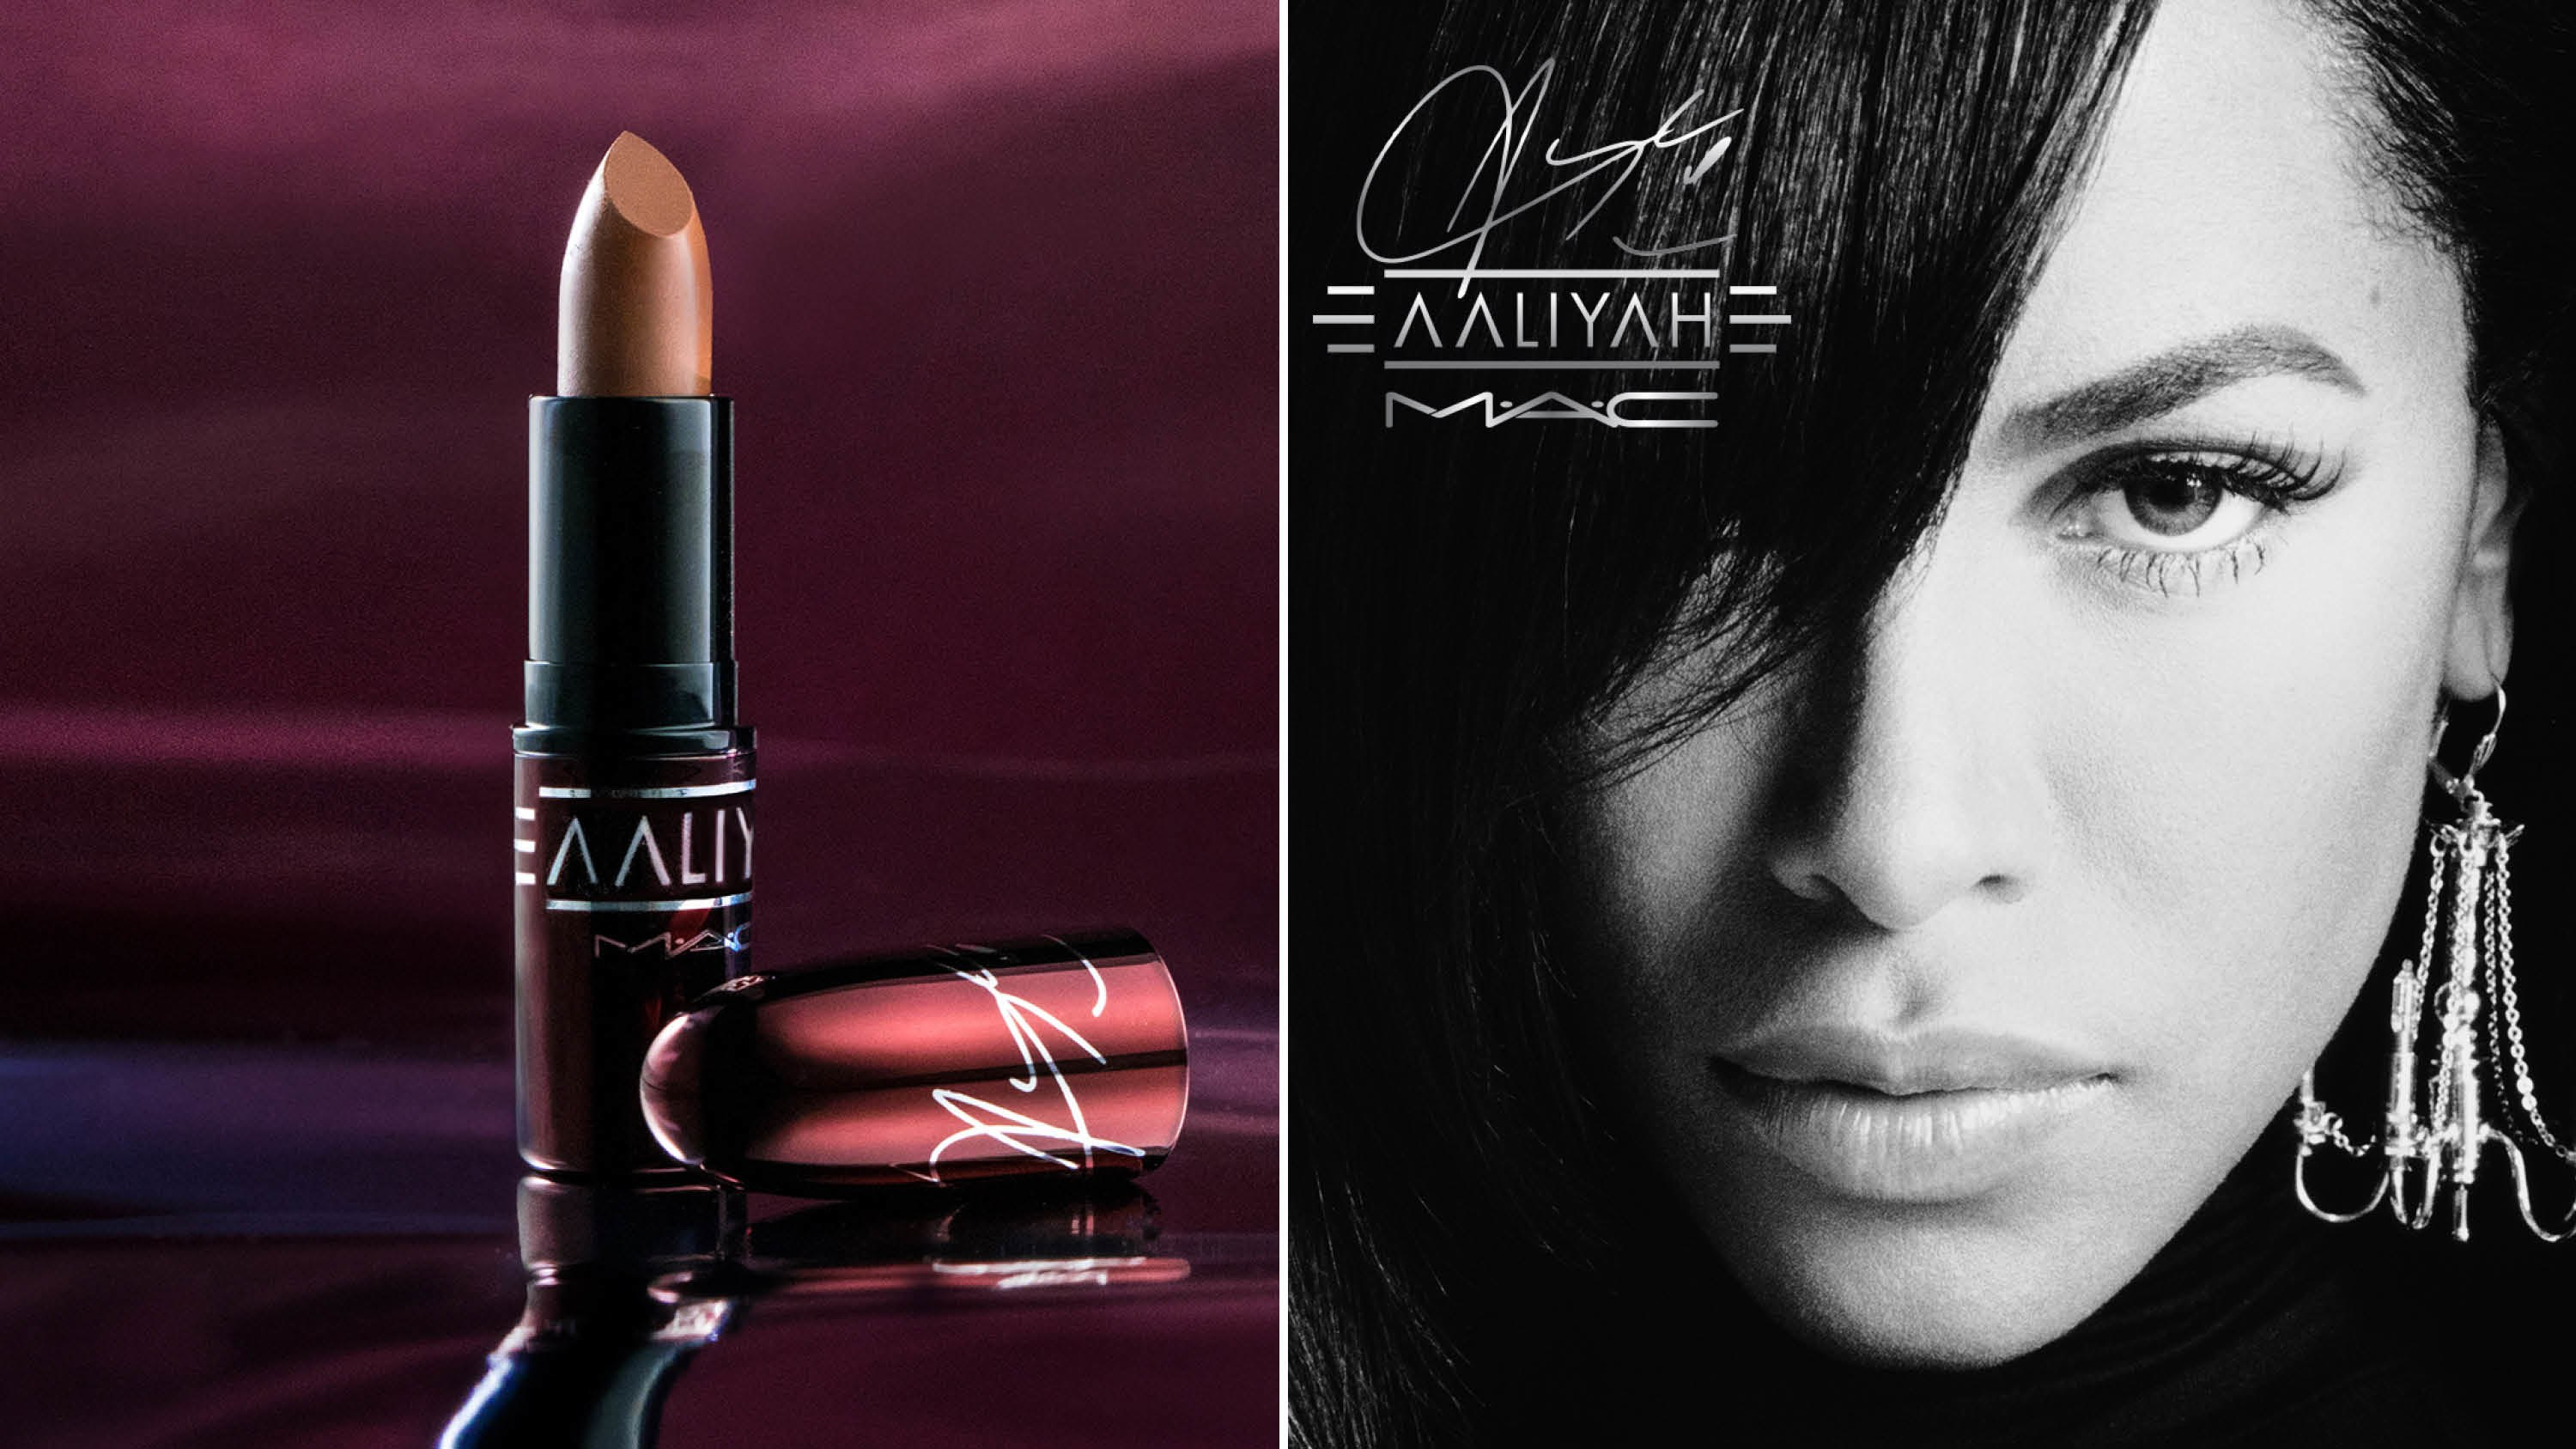 MAC x Aaliyah makeup collaboration